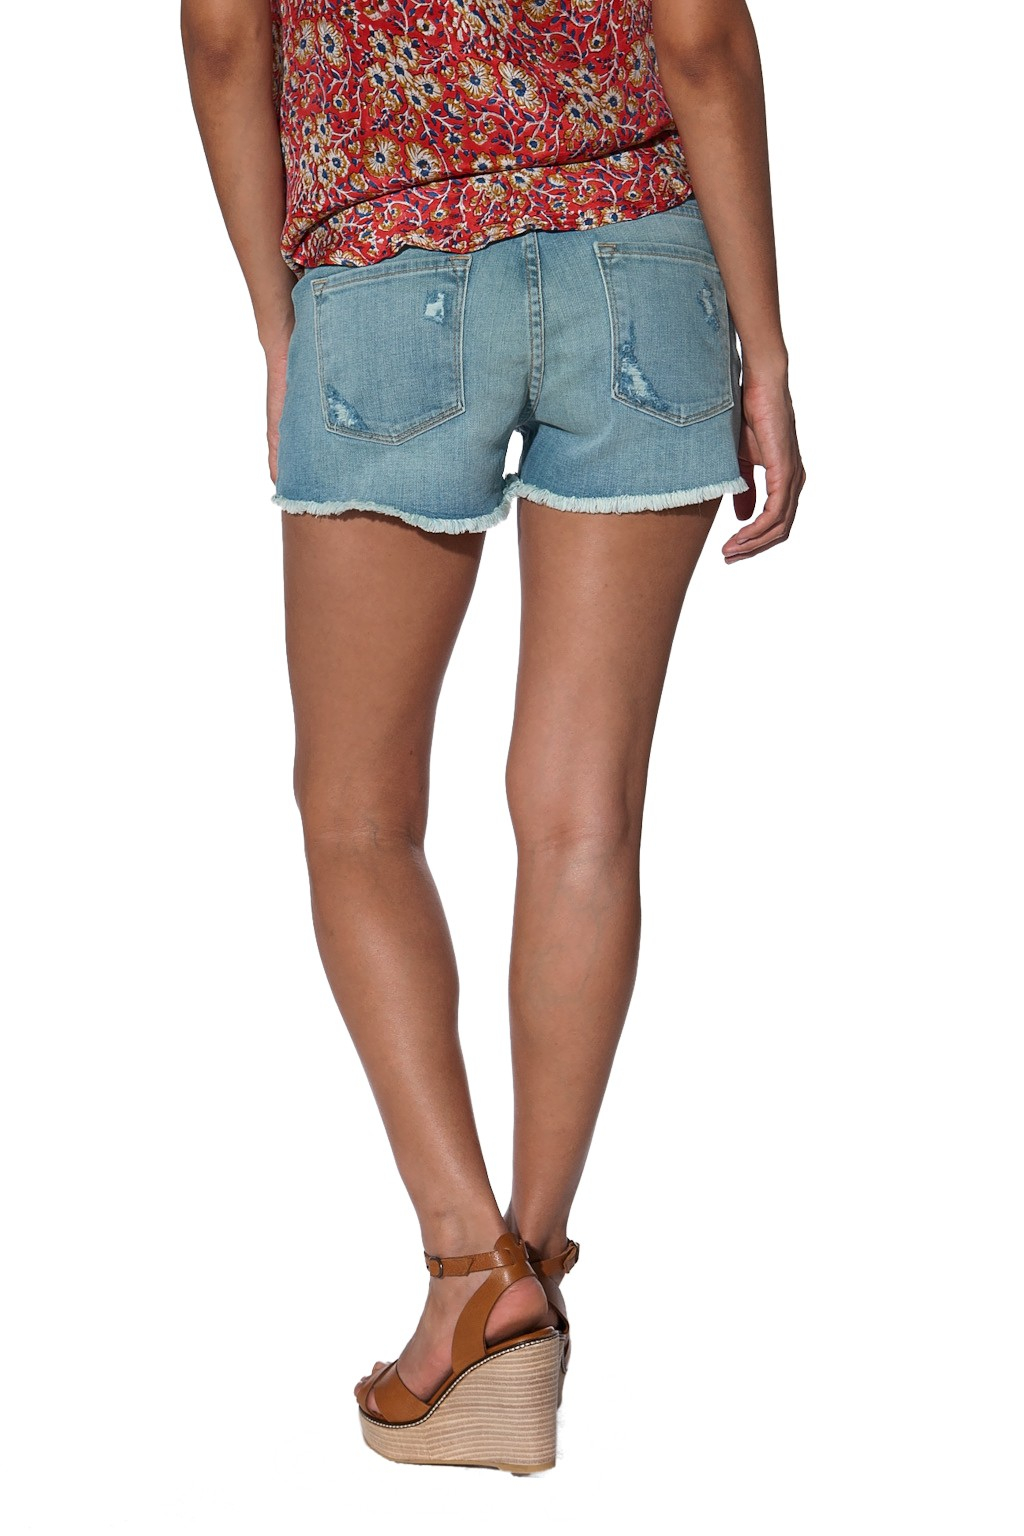 Frame denim Cut Off Jean Shorts in Blue (GREEN)